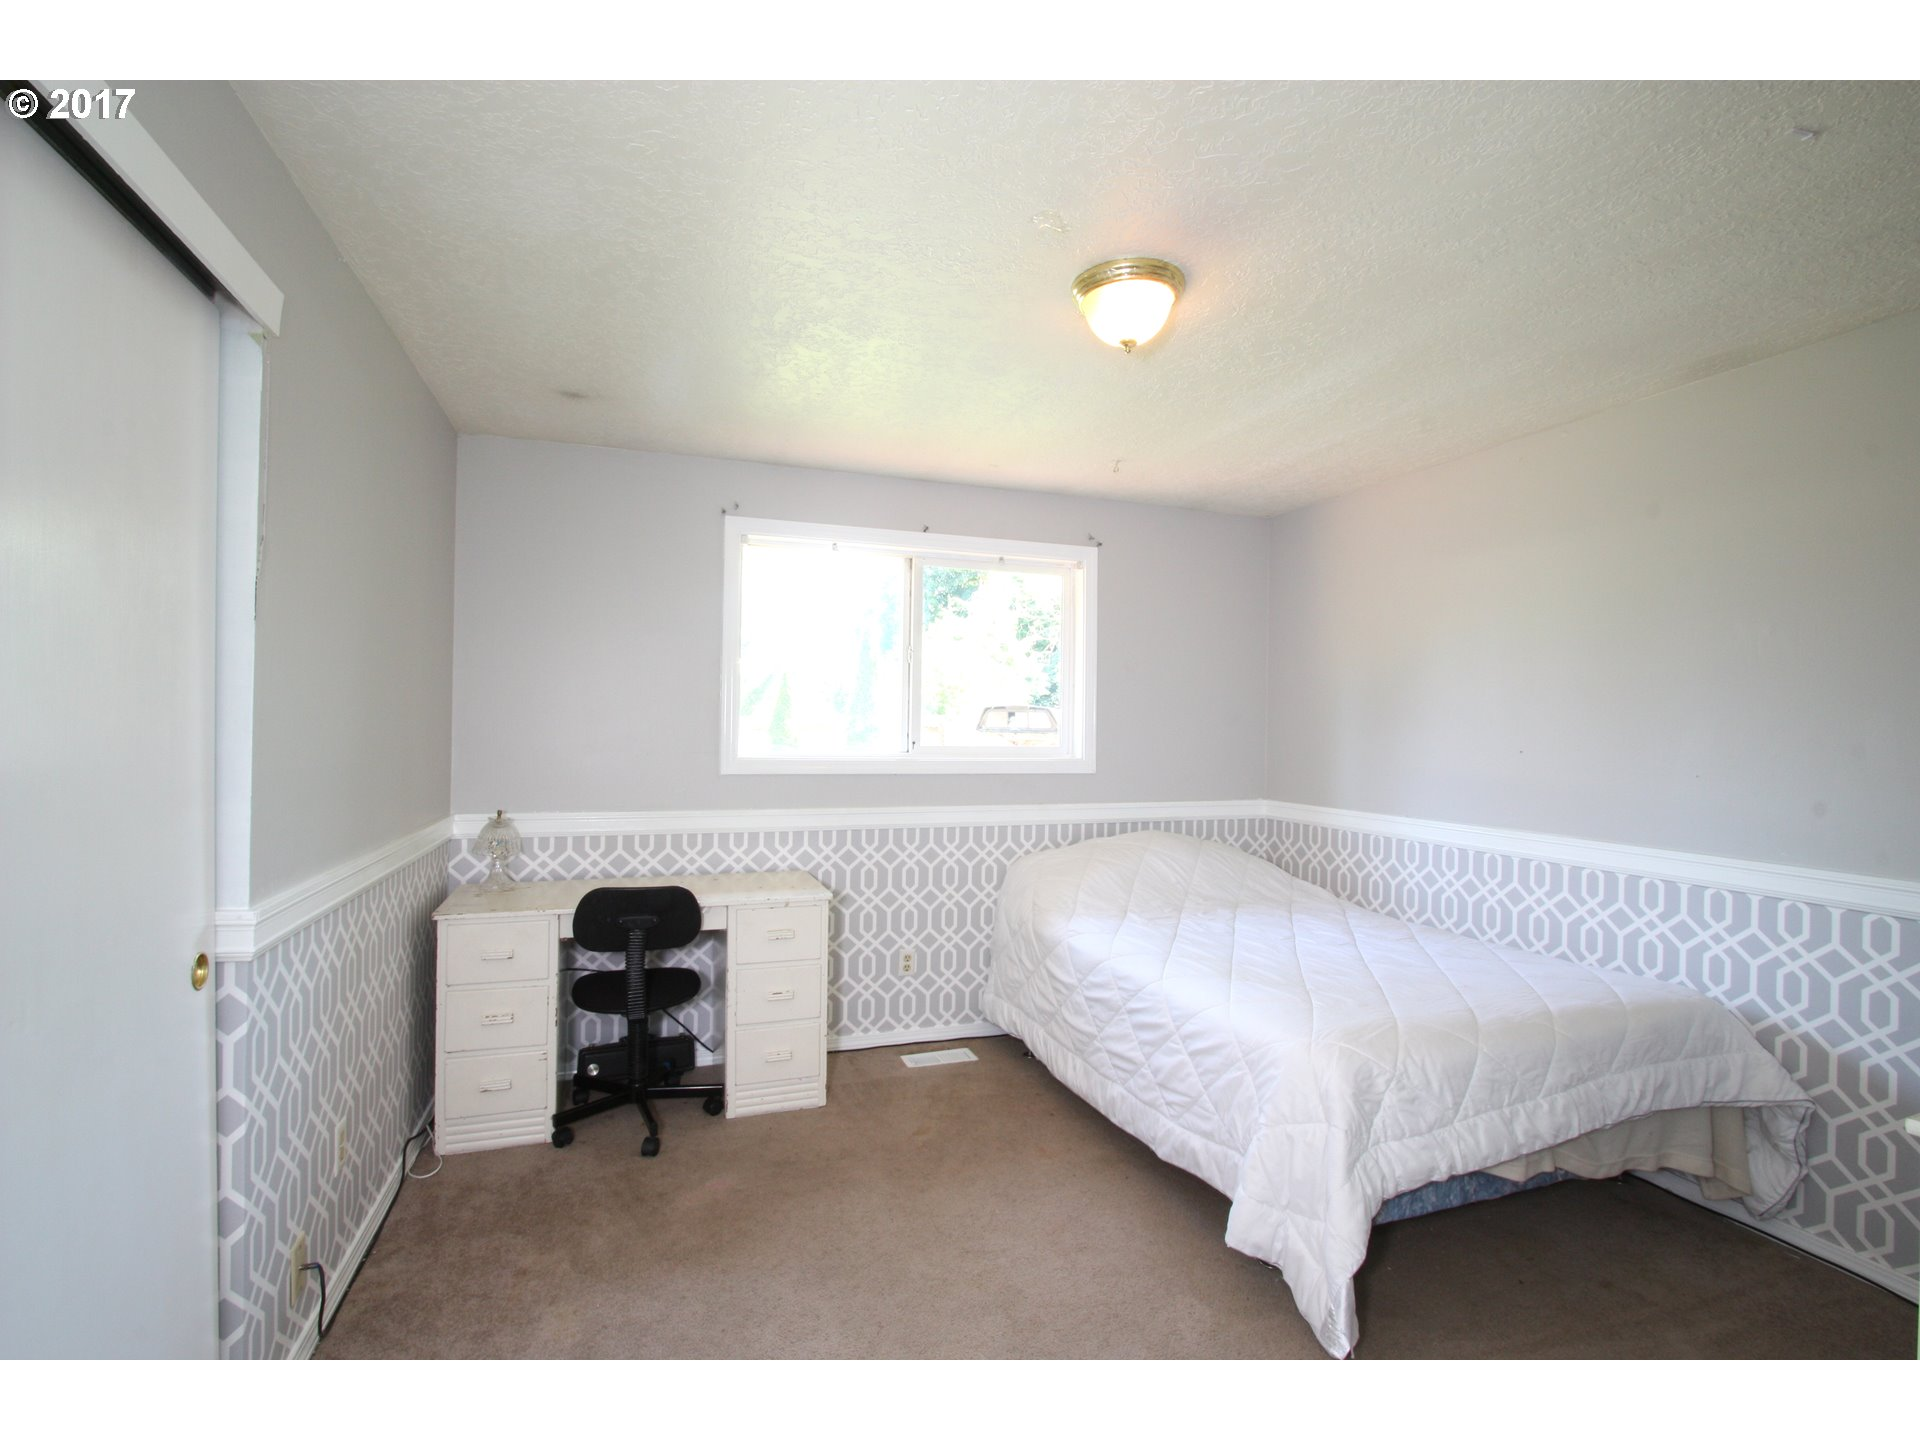 1930 SW 195TH AVE Aloha, OR 97003 - MLS #: 17683279